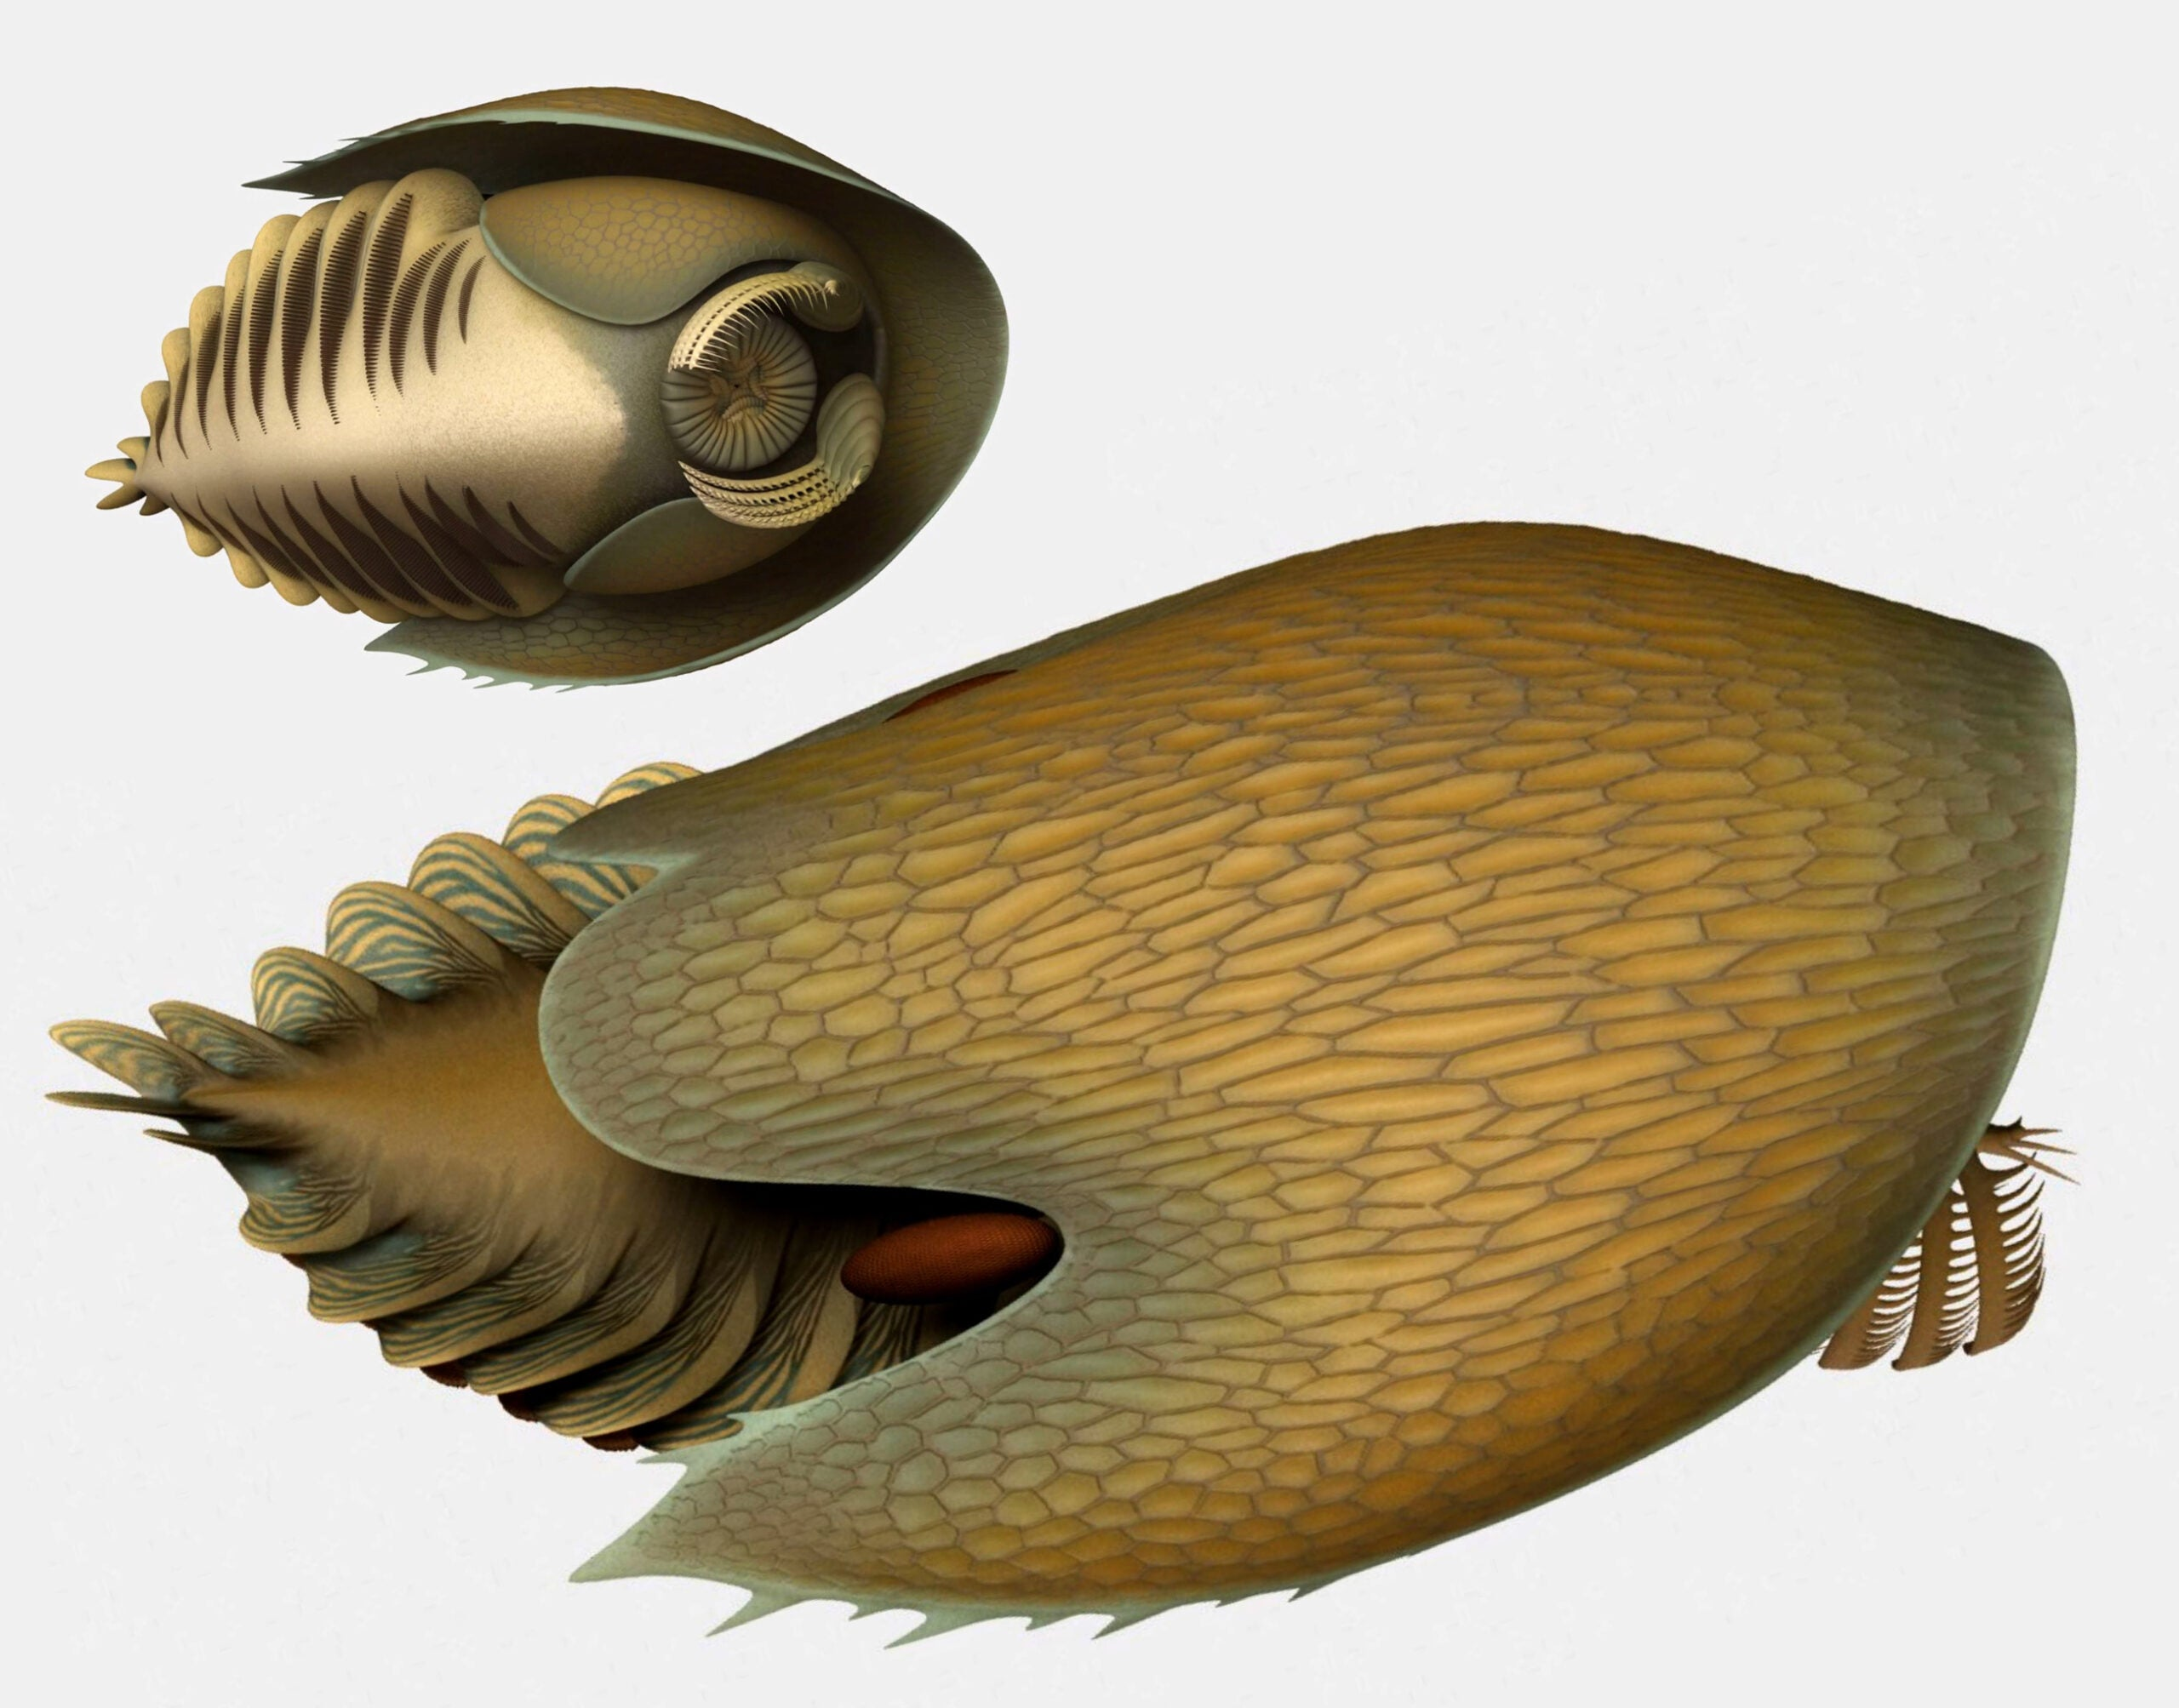 This ancient predator had claws like rakes and a body like a spaceship